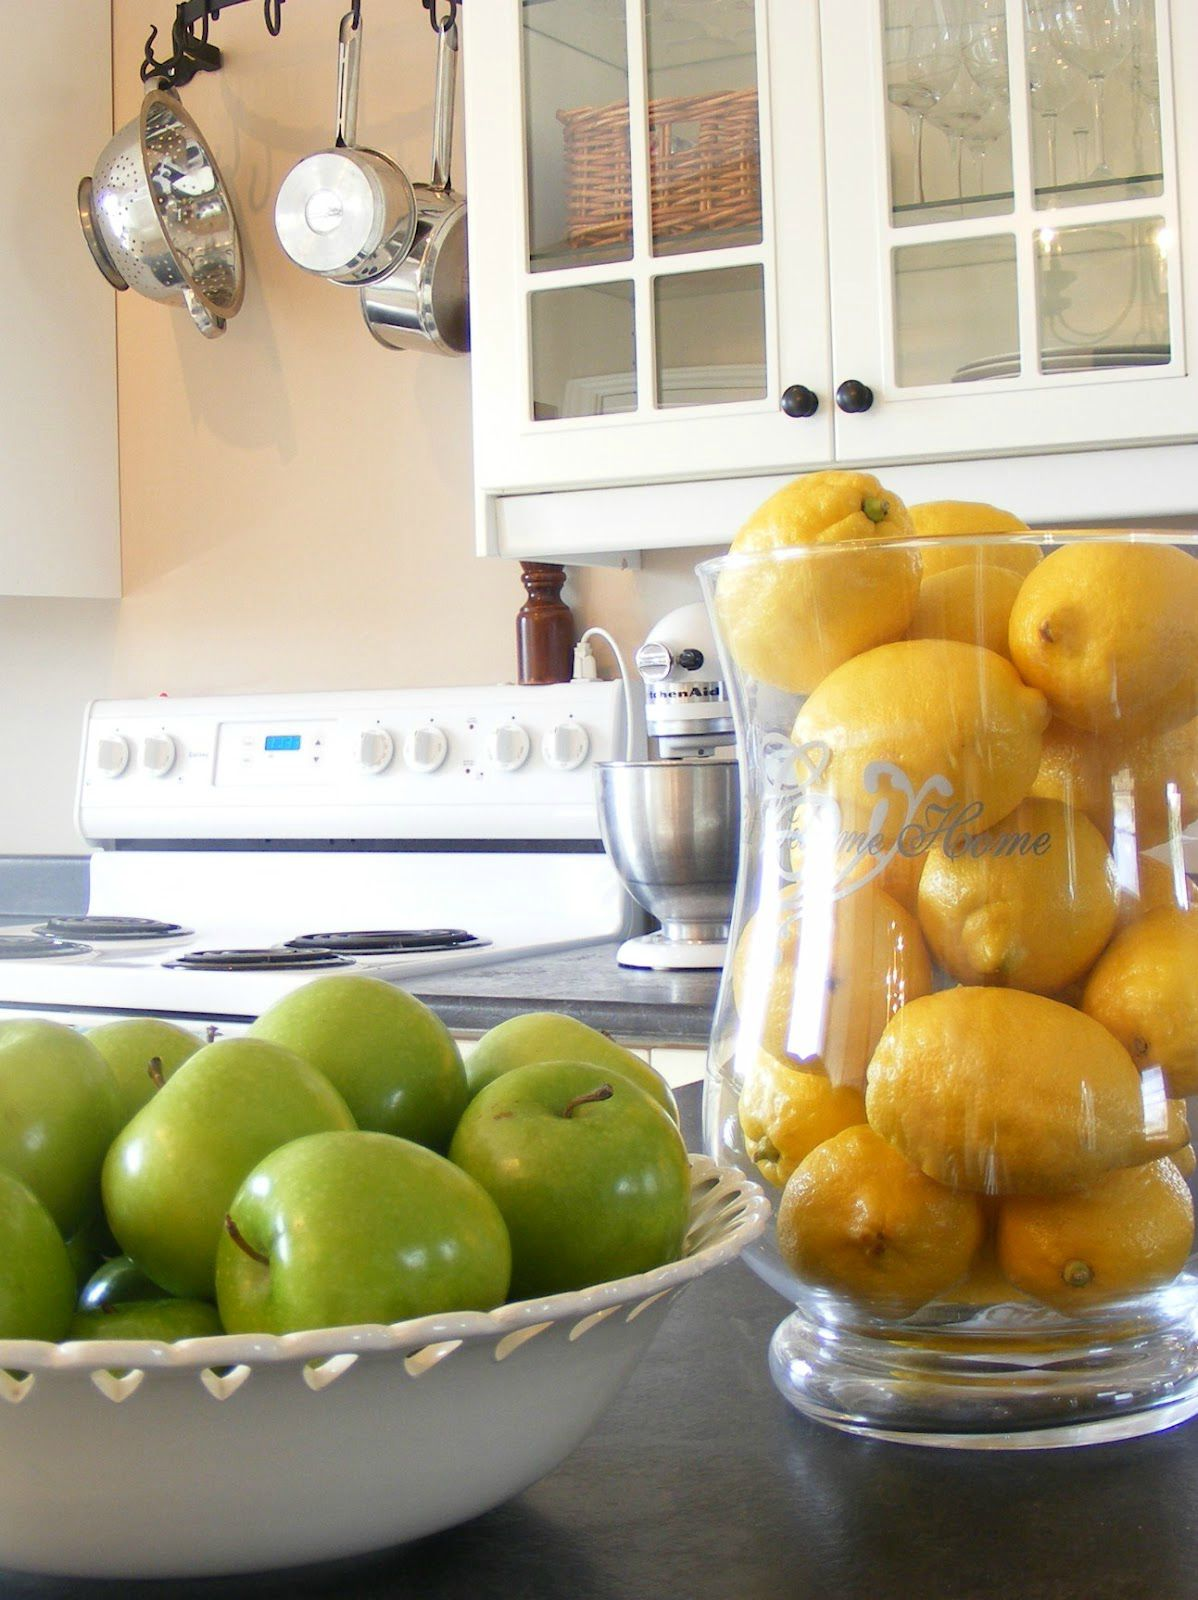 Kitchen staged with fruit